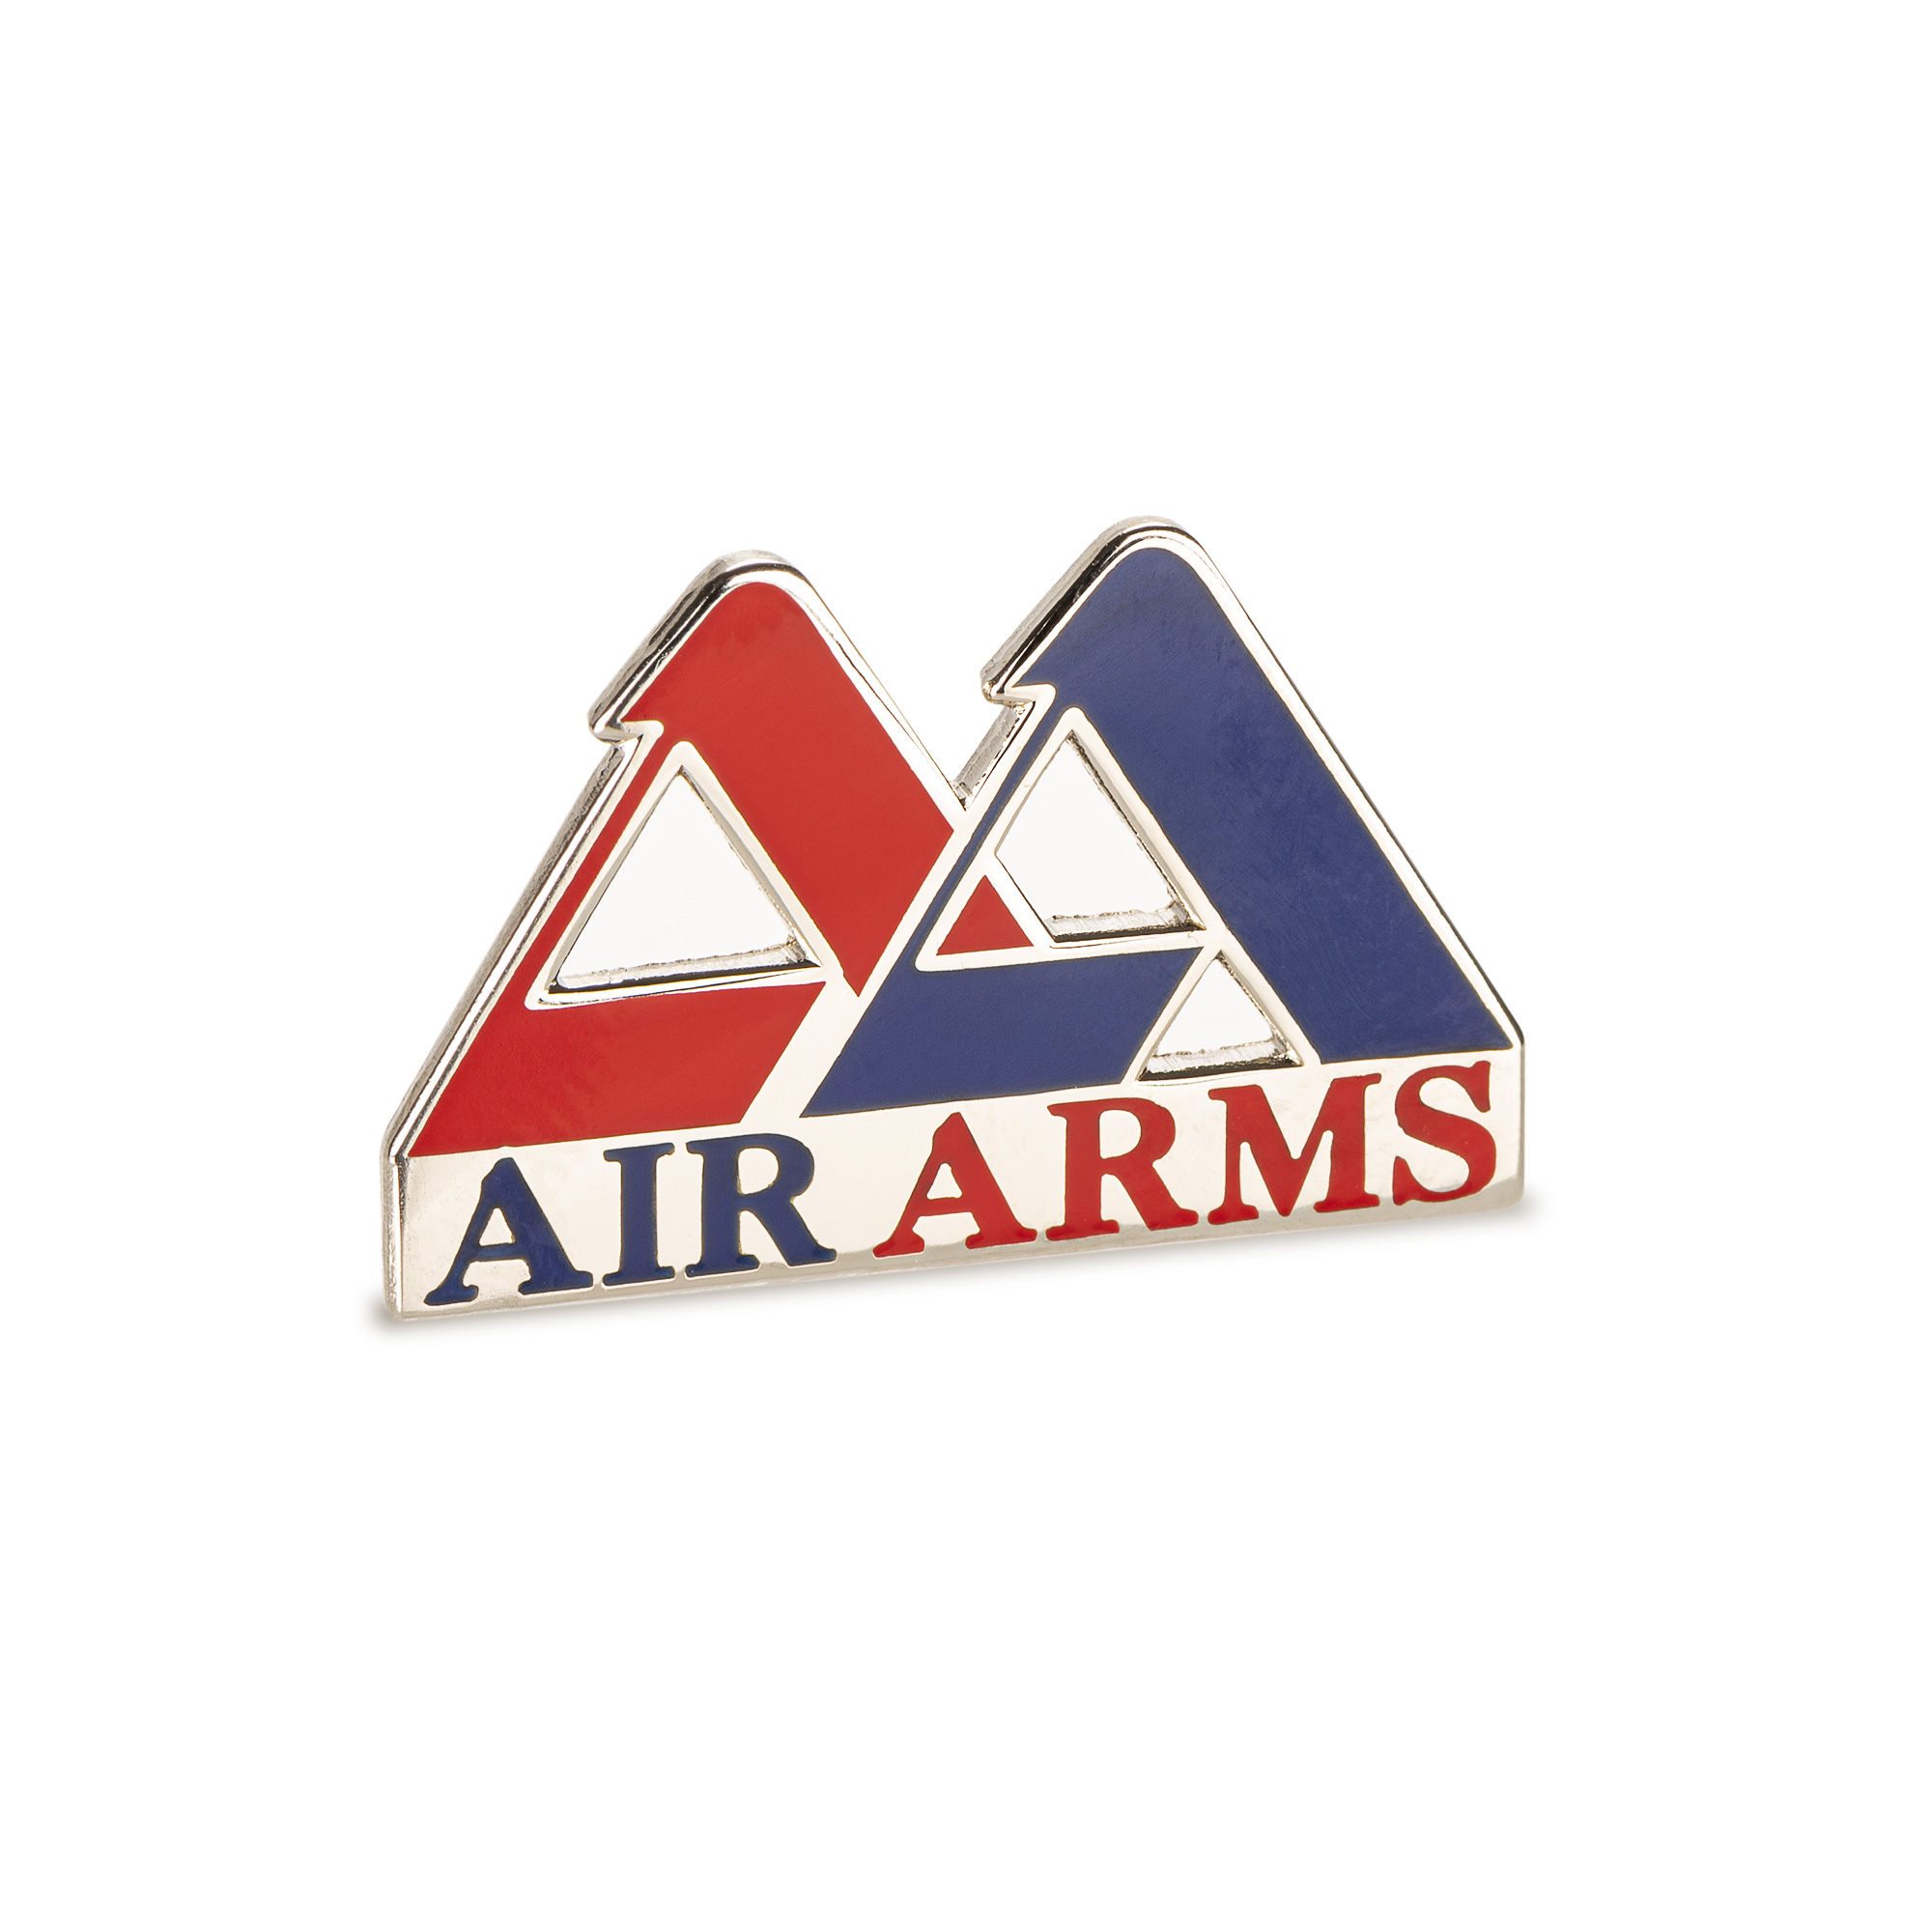 Air Arms Metal Pin Badge